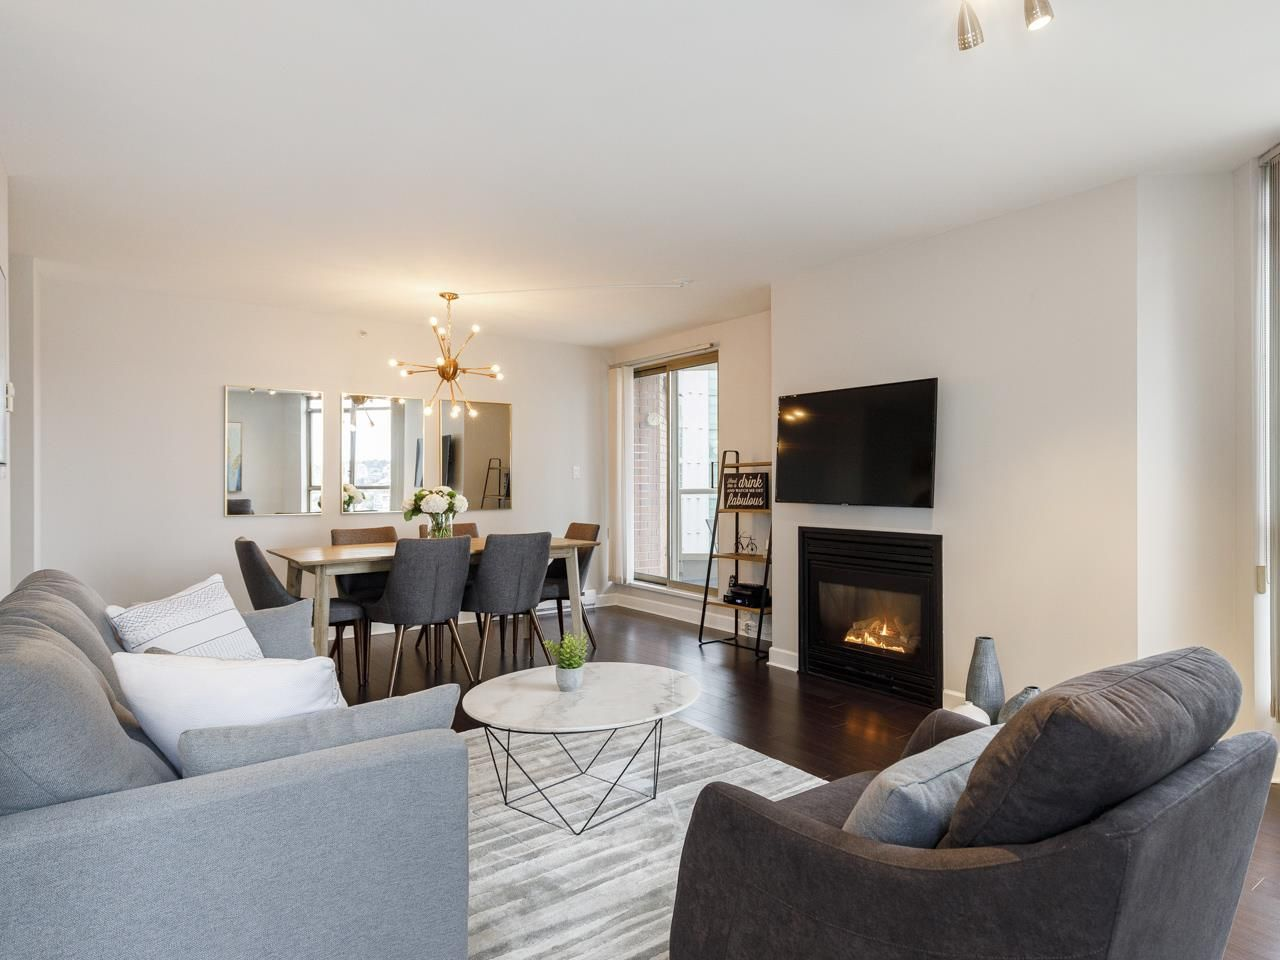 Main Photo: 2003 867 HAMILTON STREET in Vancouver: Downtown VW Condo for sale (Vancouver West)  : MLS®# R2519706